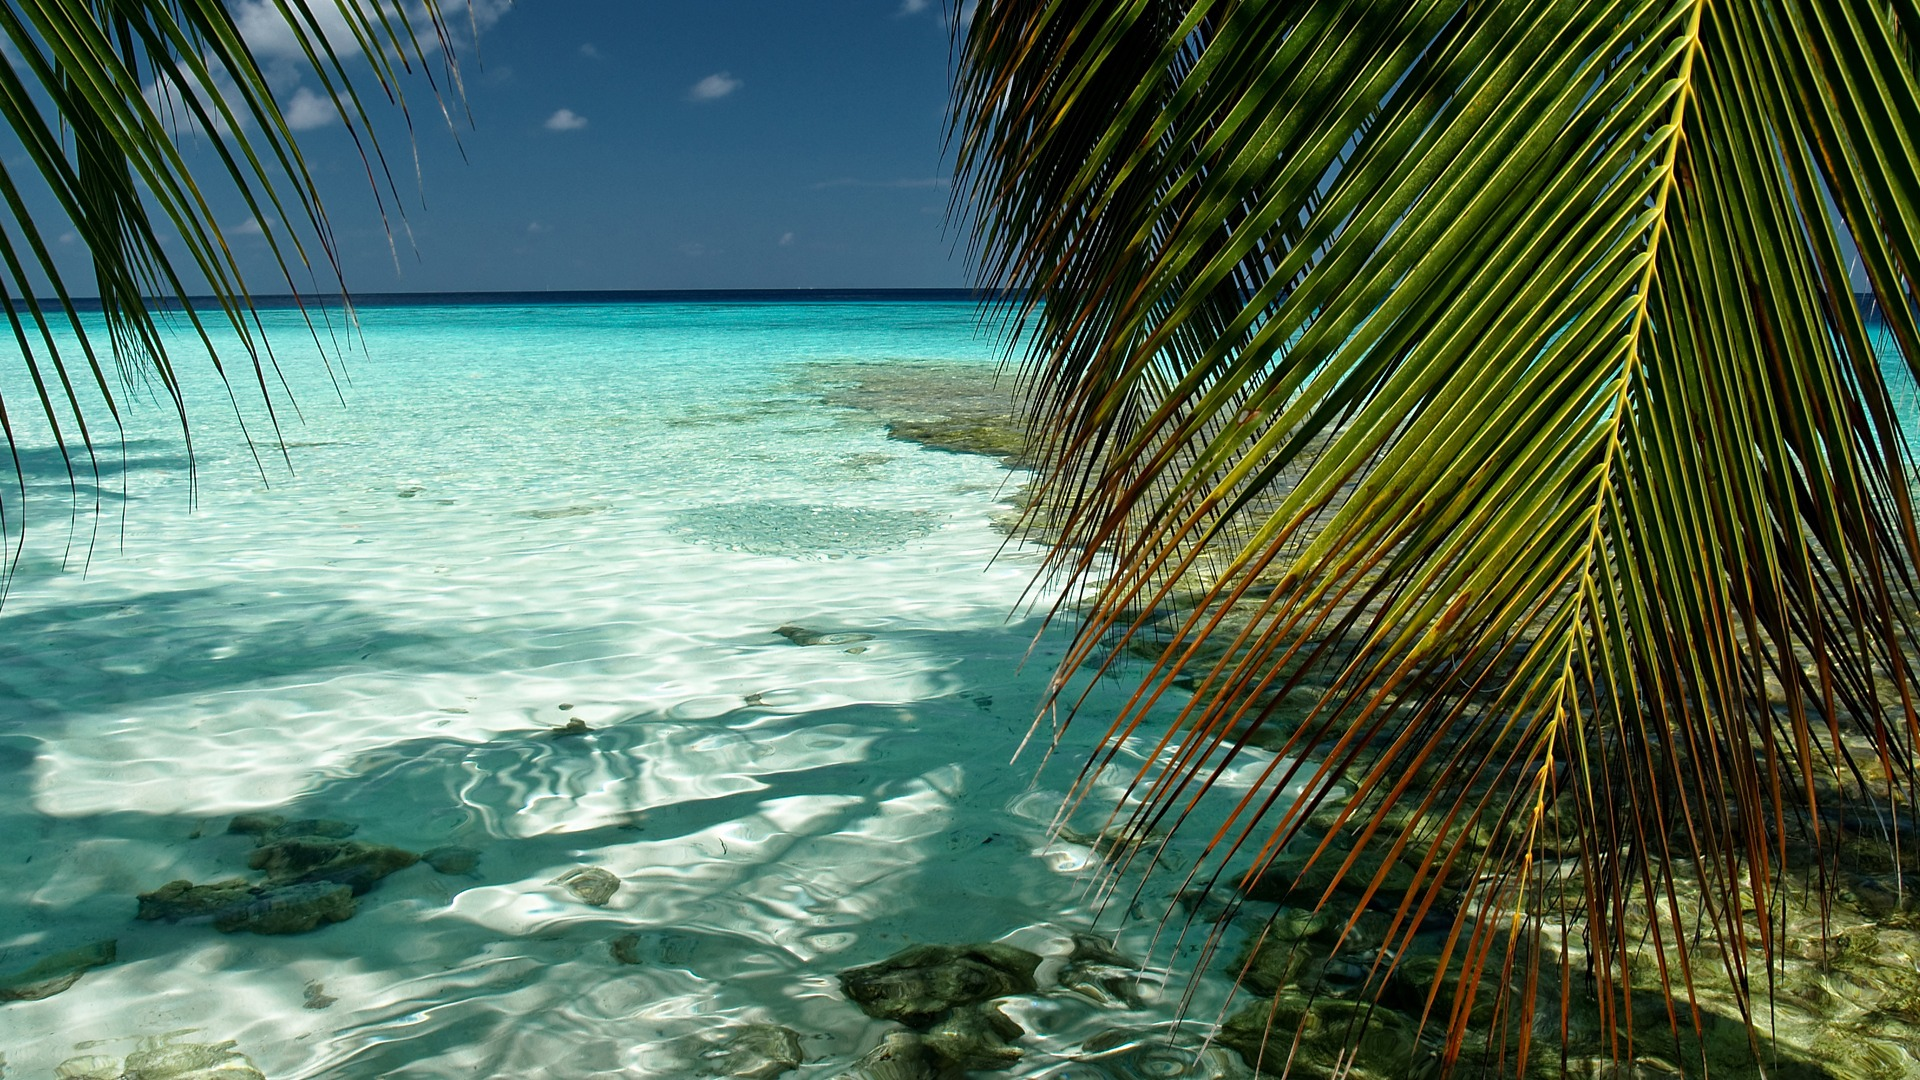 Download-sea-the-sky-water-transparency-nature-palm-trees-foliage-the-Maldives-the-wallpaper-wp3404983